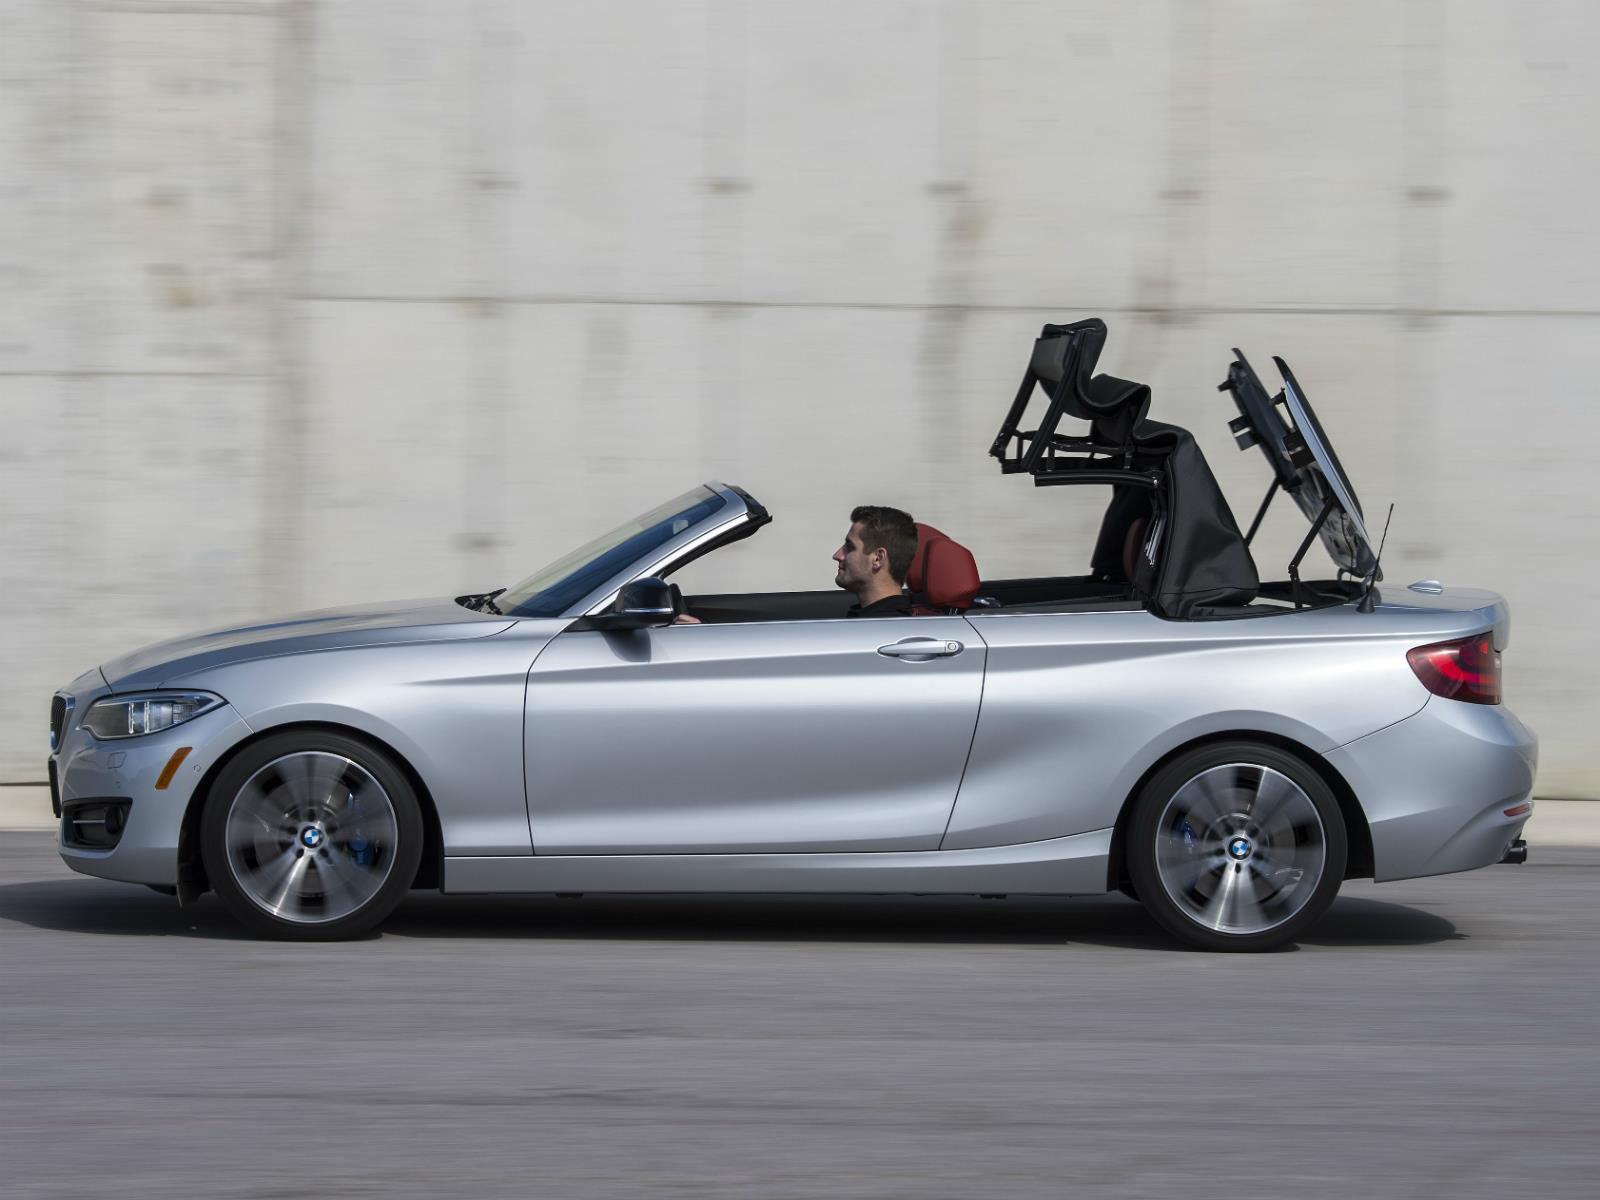 el nuevo bmw serie 2 cabriolet llega a colombia desde 125. Black Bedroom Furniture Sets. Home Design Ideas